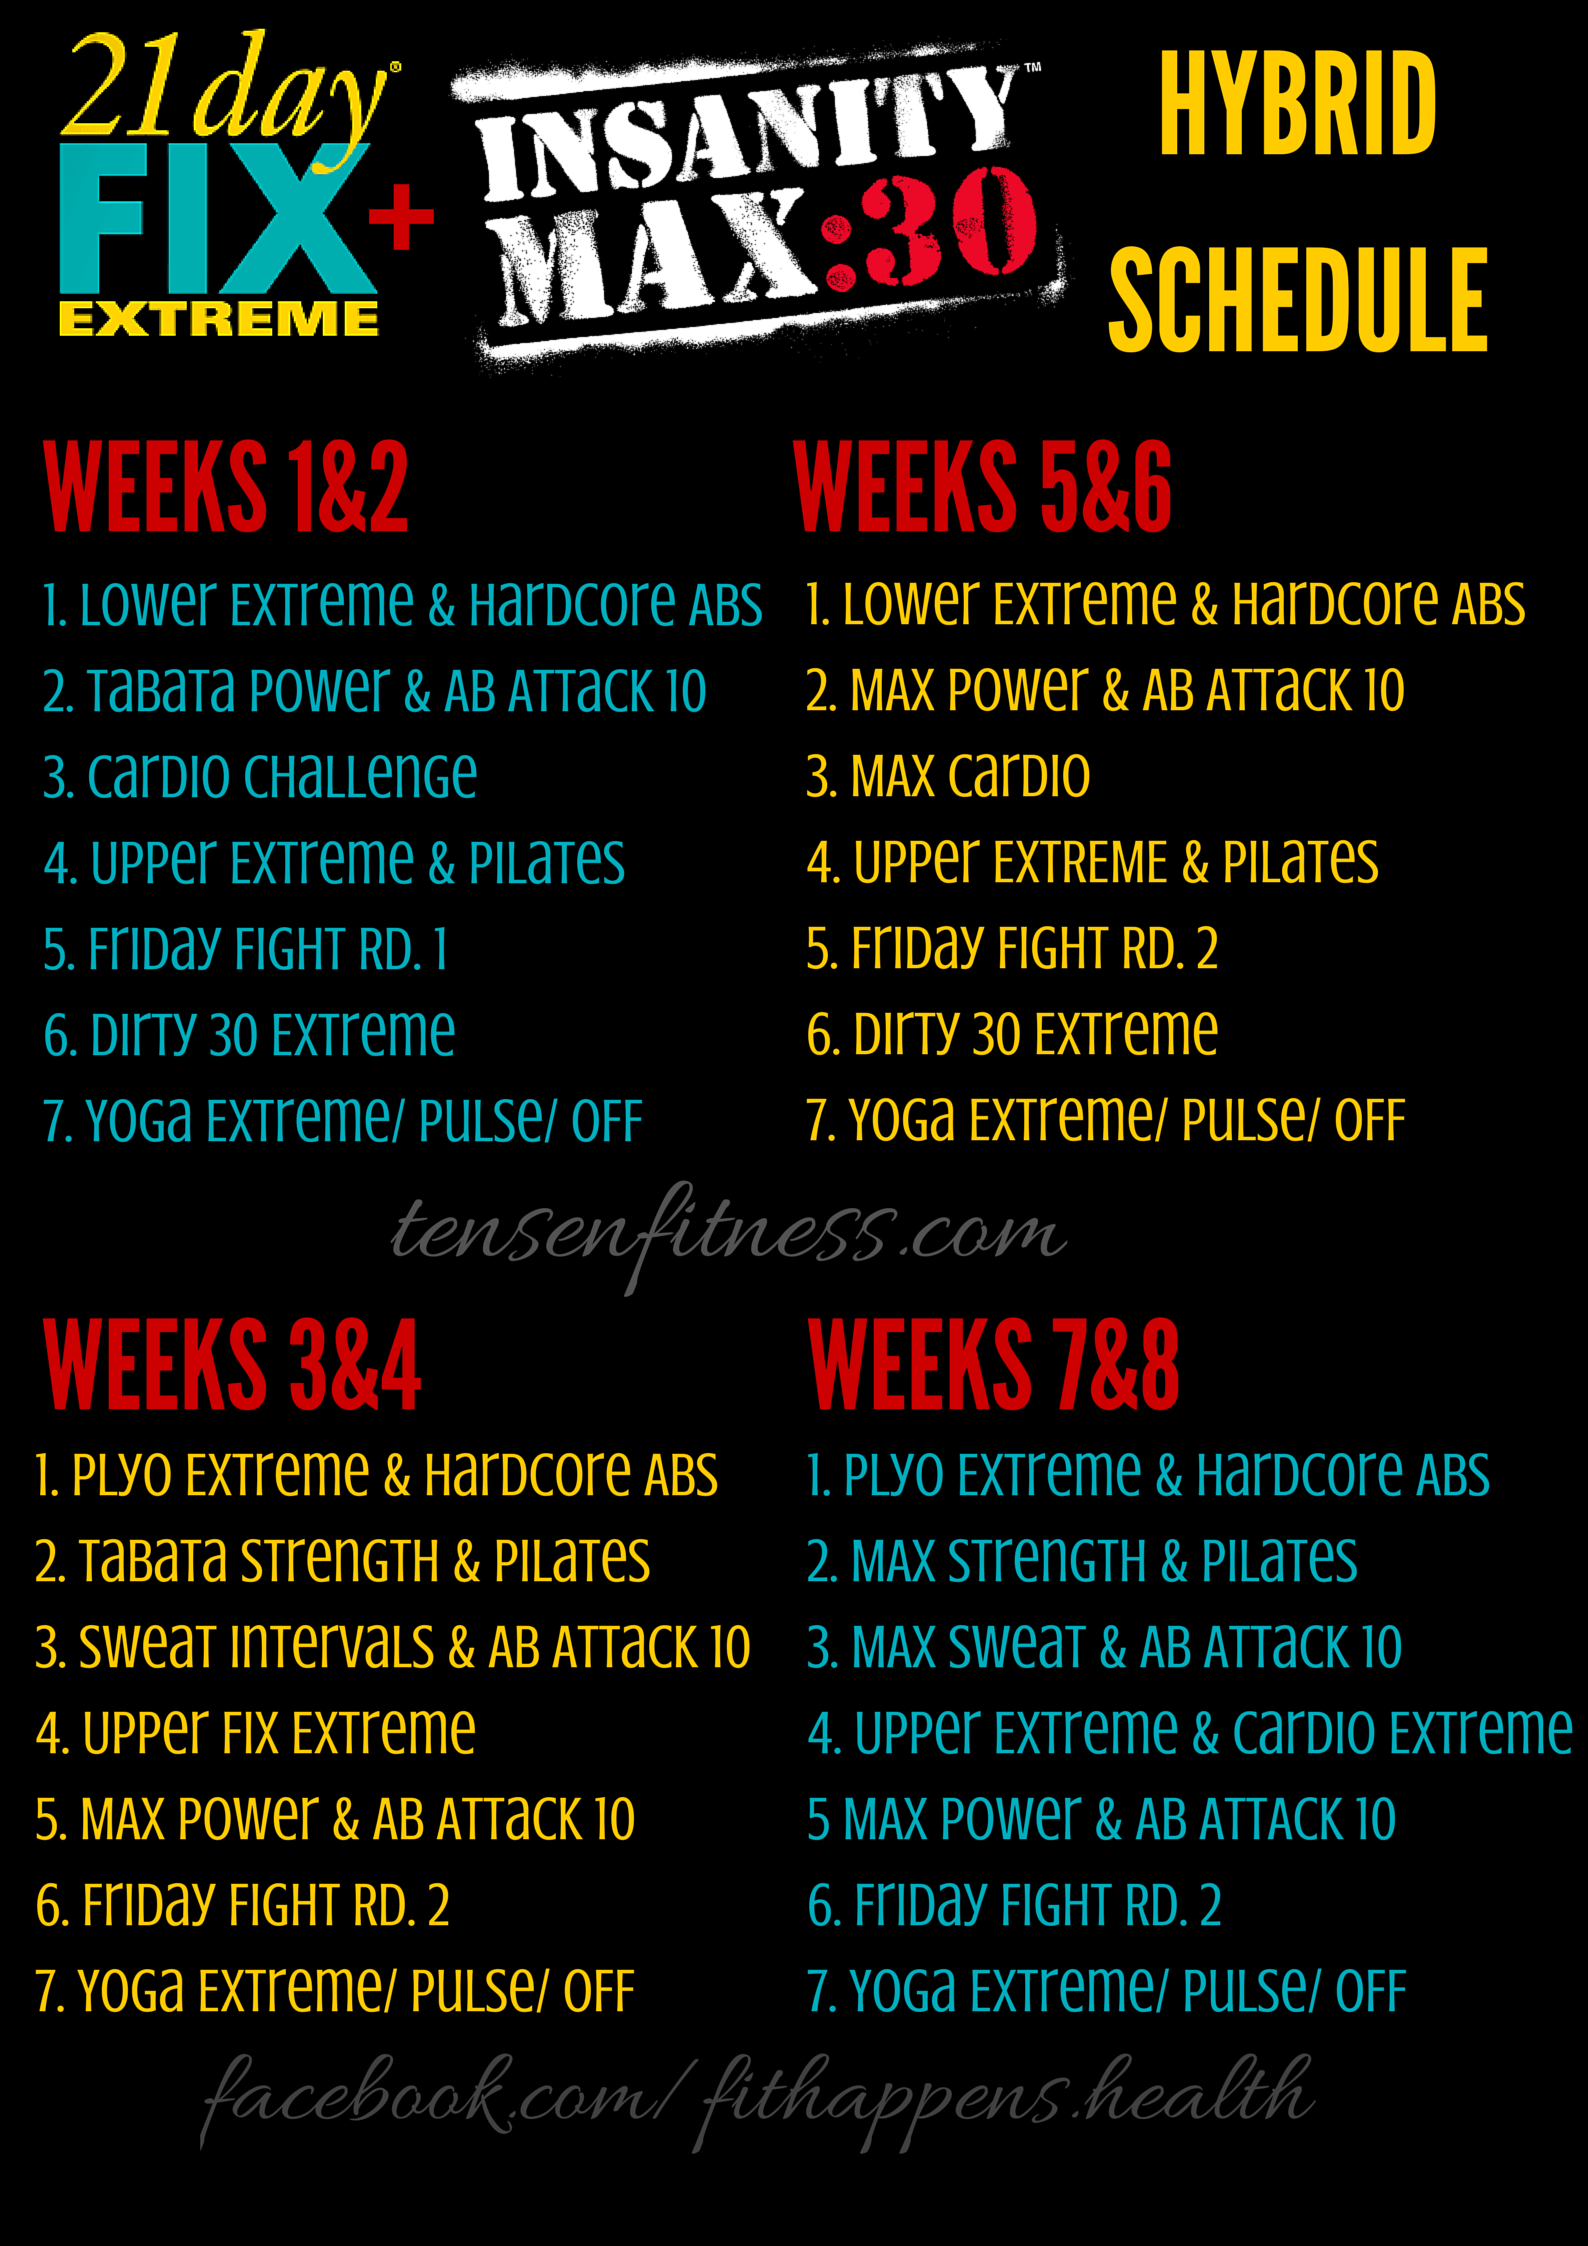 Insanity Max 30 Amp 21 Day Fix Extreme Hybrid Schedule